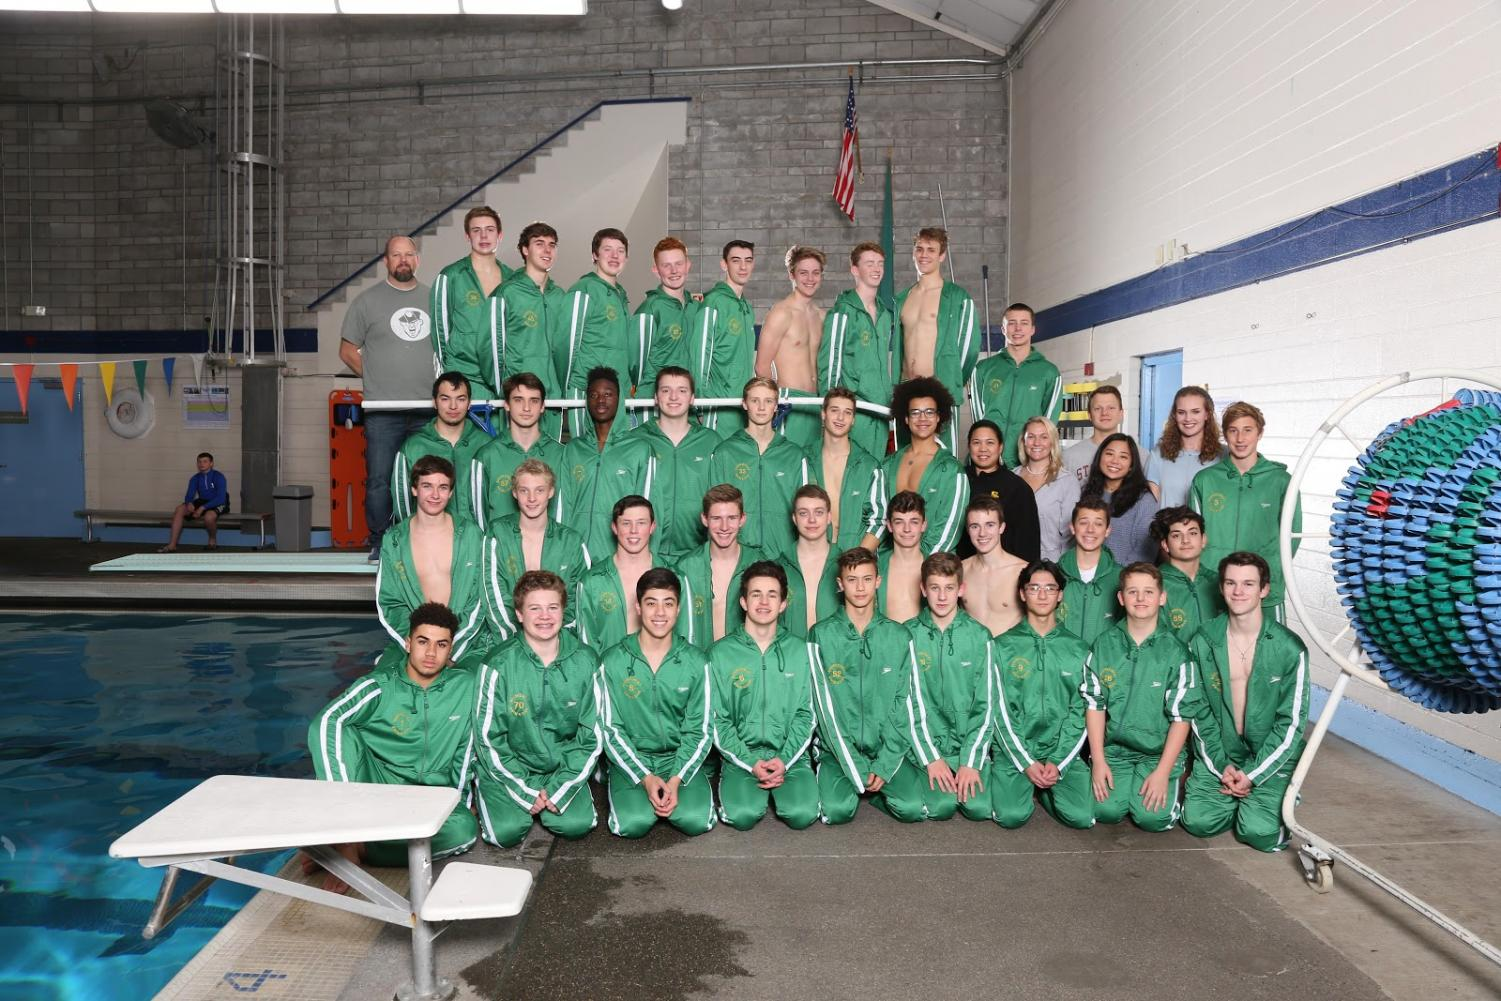 The Shorecrest Boy's Swim and Dive team poses for their team photo, after an unusually successful year.